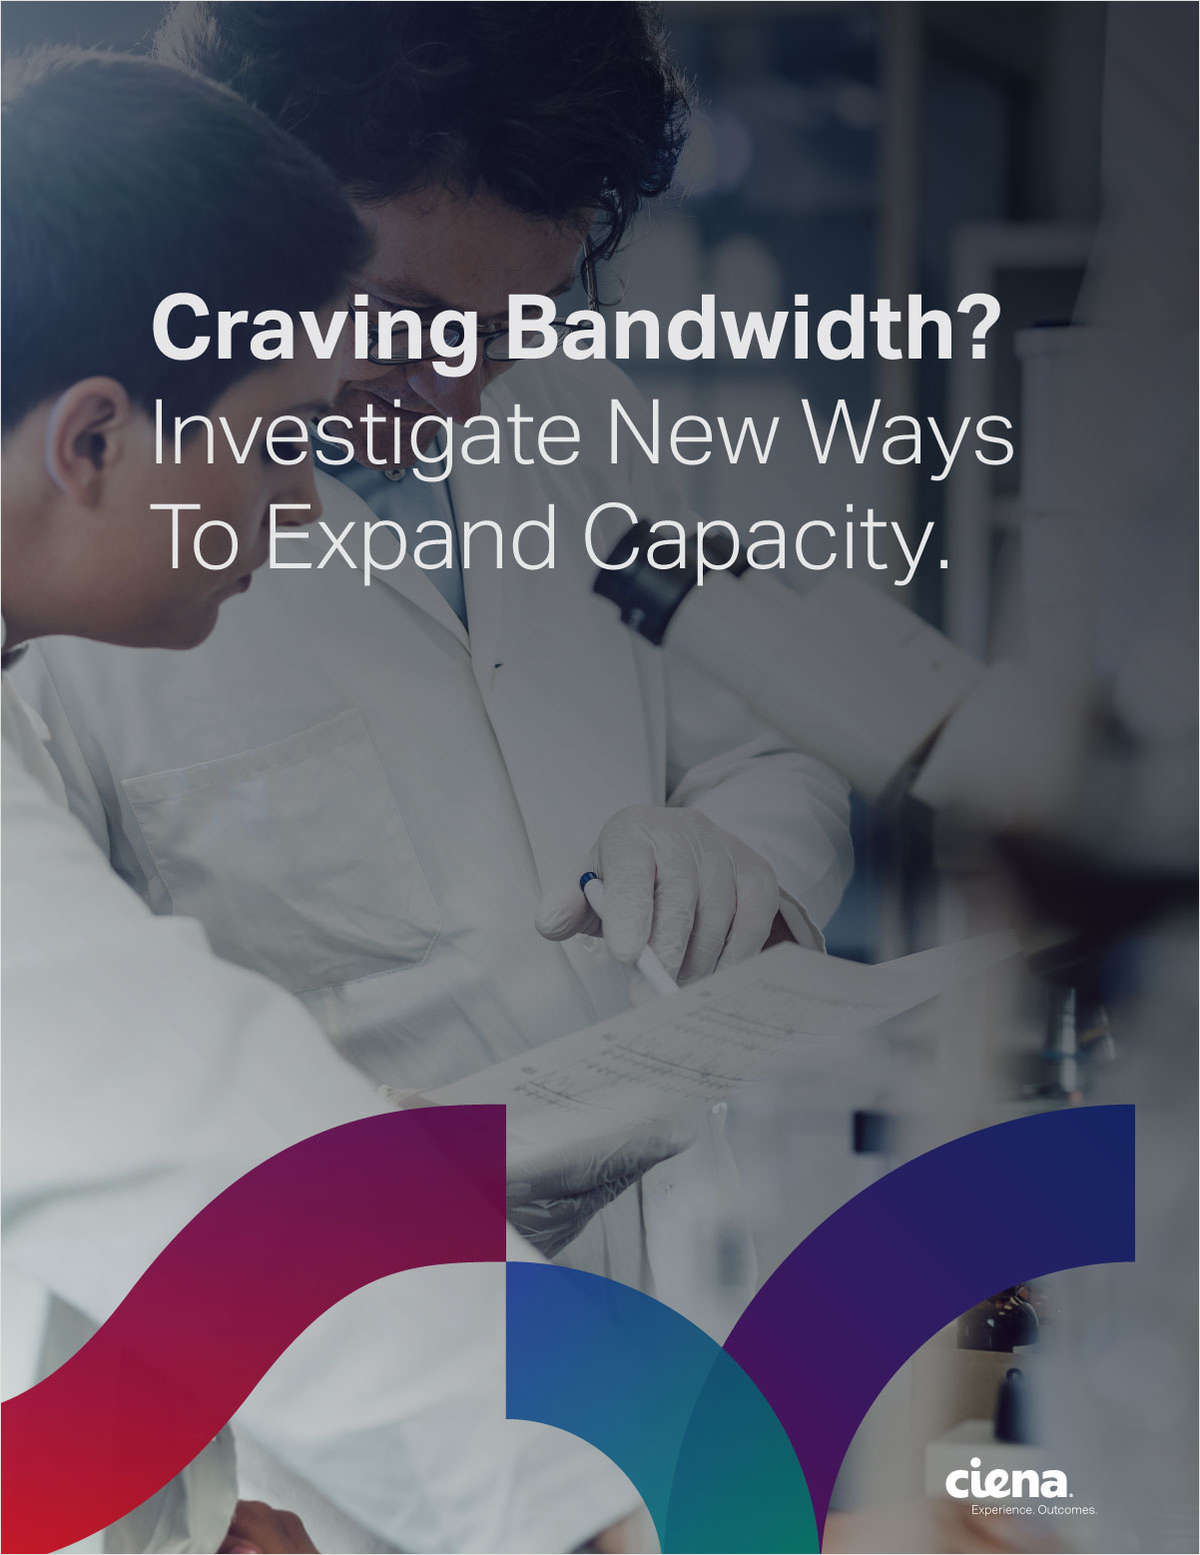 Craving Bandwidth? Investigate New Ways to Expand Capacity.